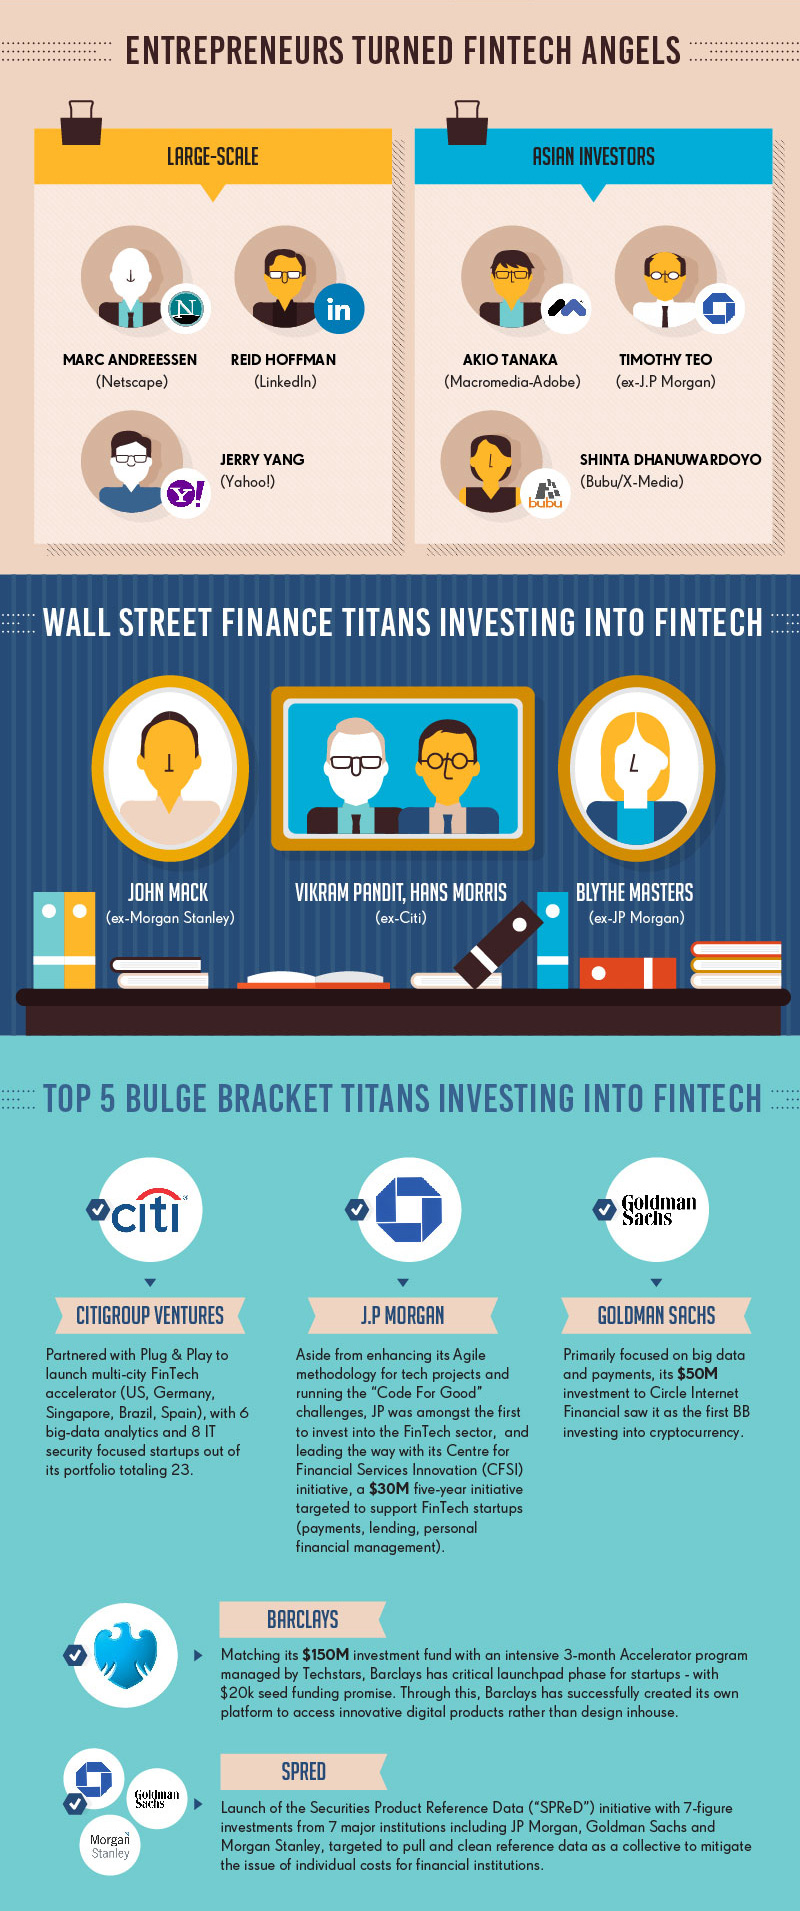 Wall street finance titans investing into Fintech